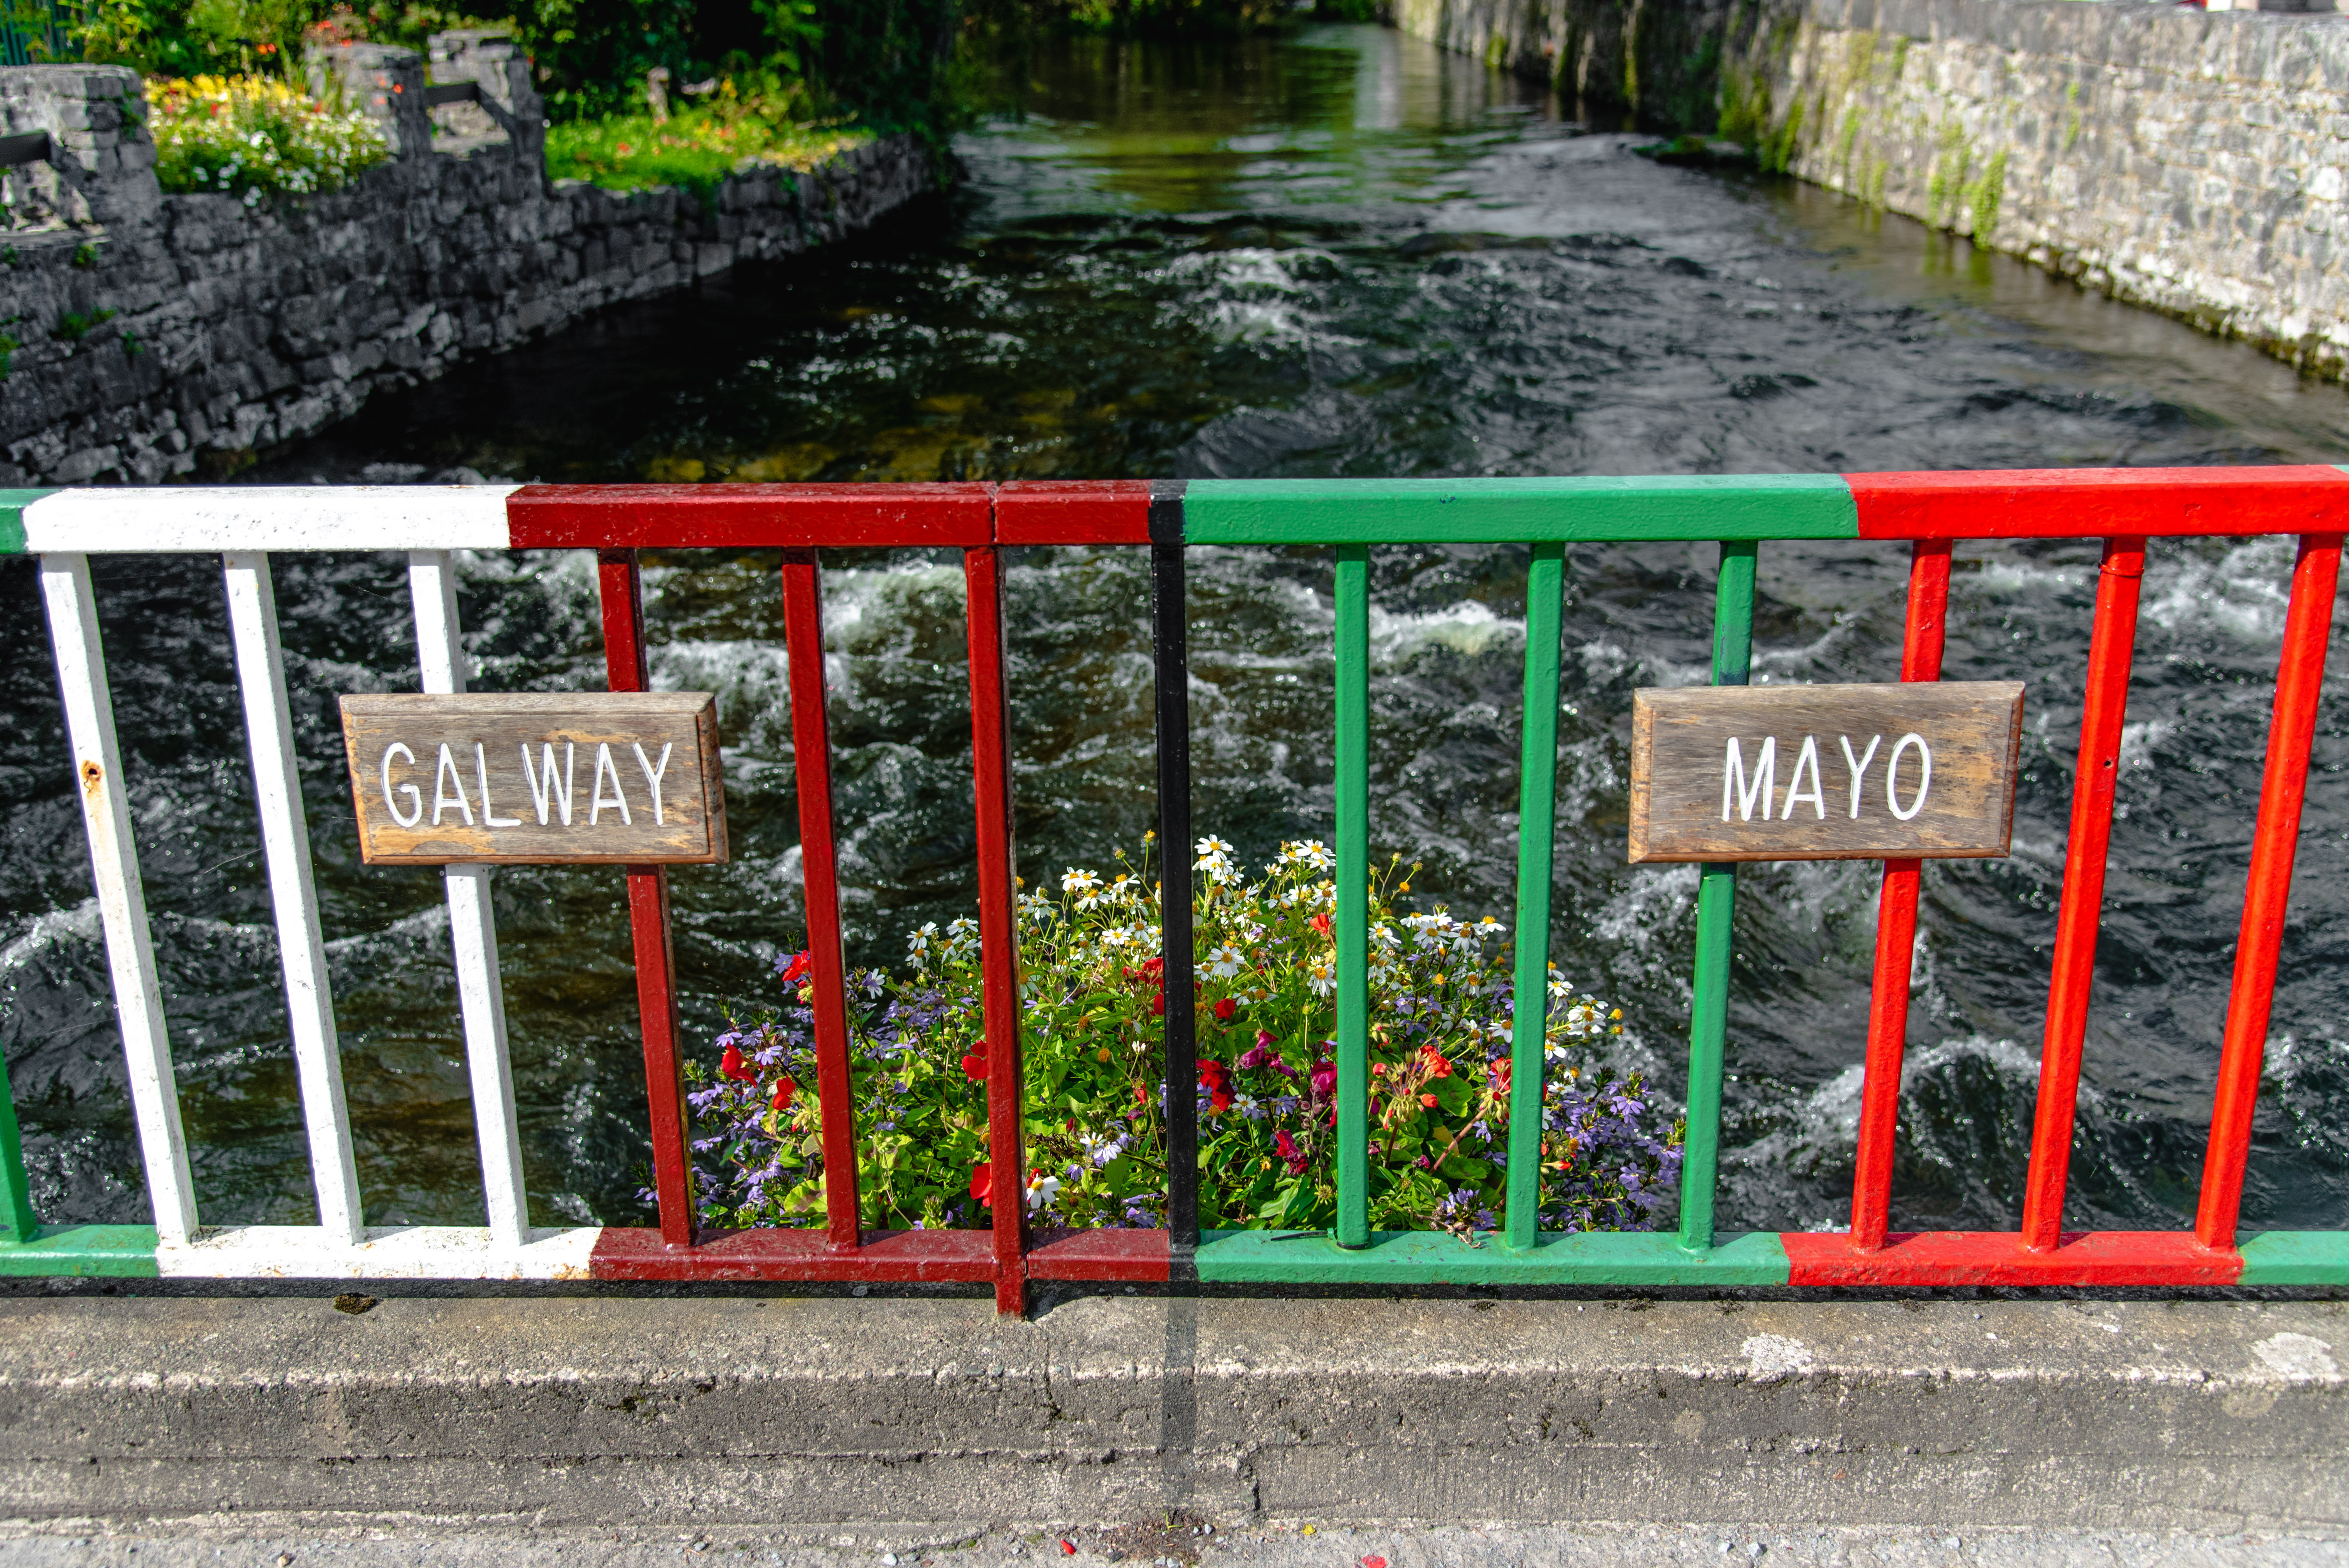 ashford castle, things to do in cong, galway, mayo , ireland